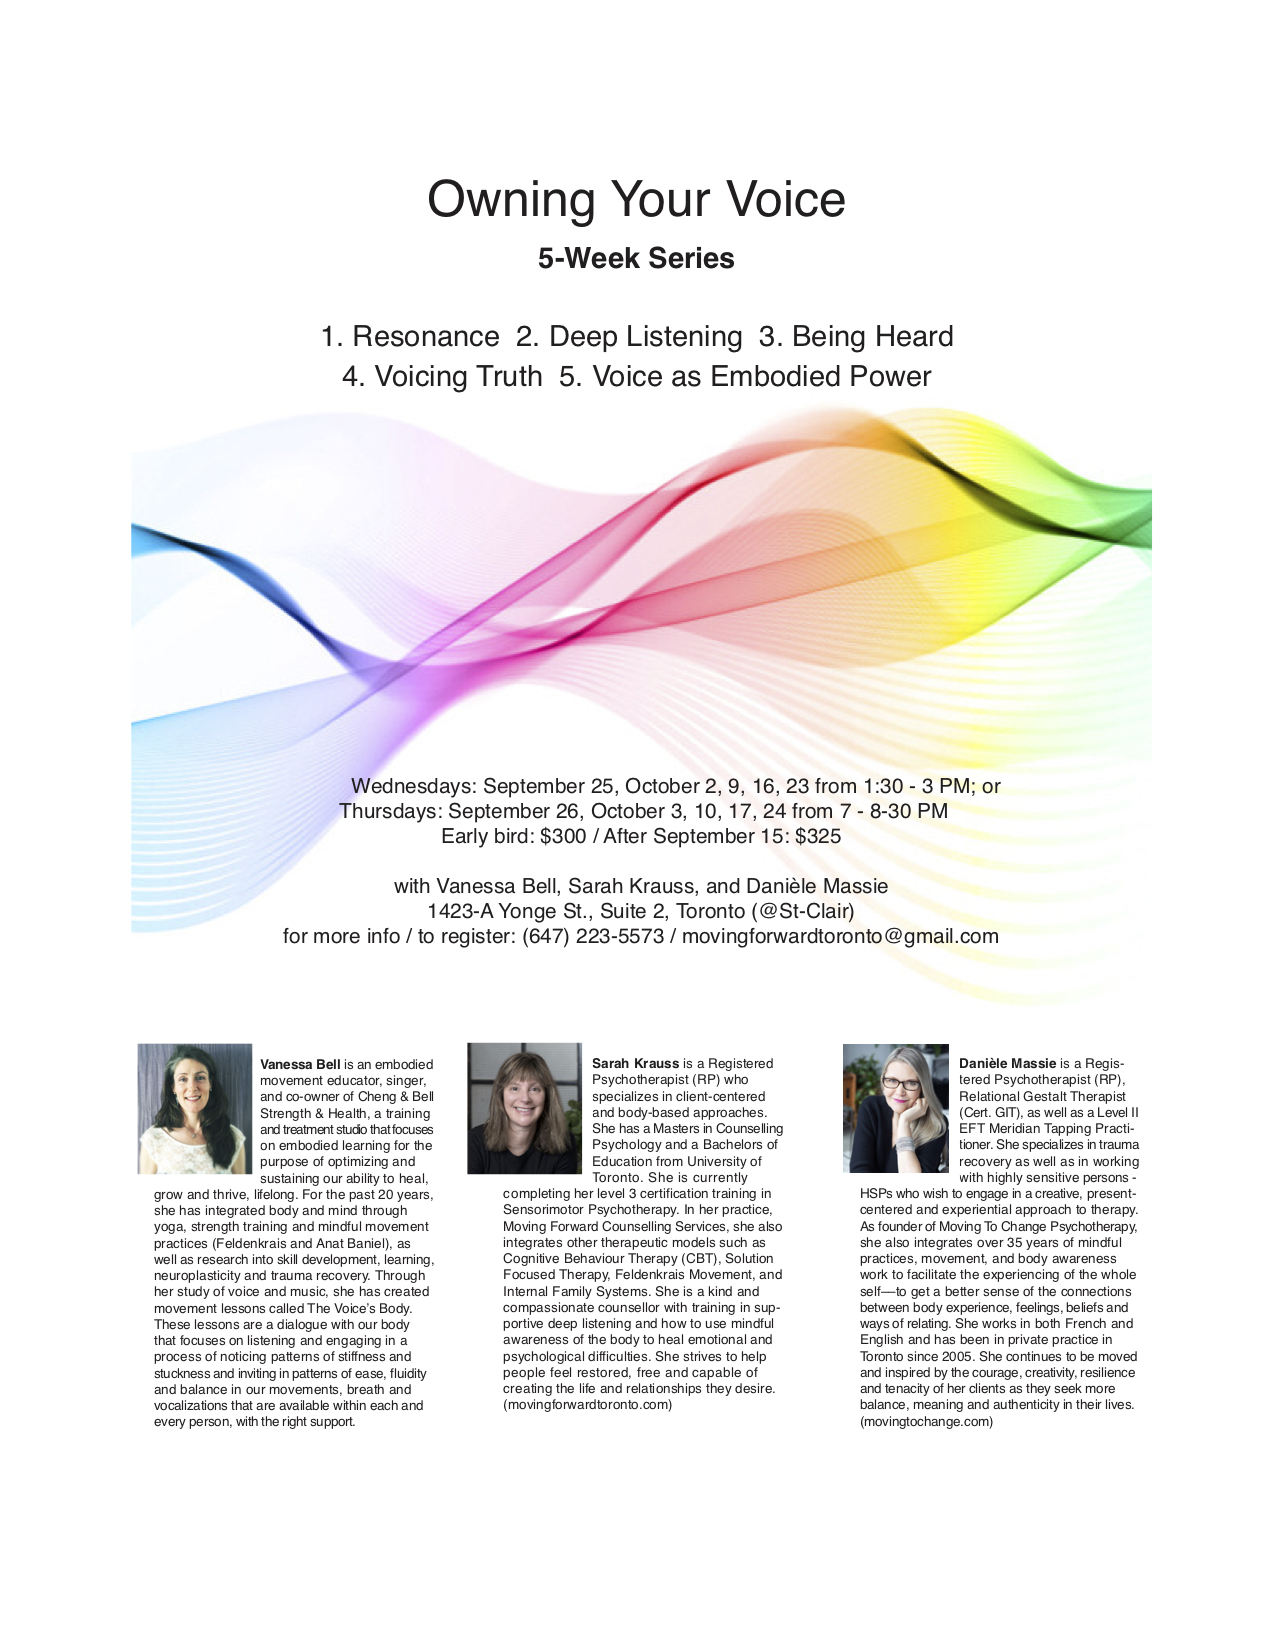 ((( Owning Your Voice Workshop Series - Fall 2019 ))).jpg